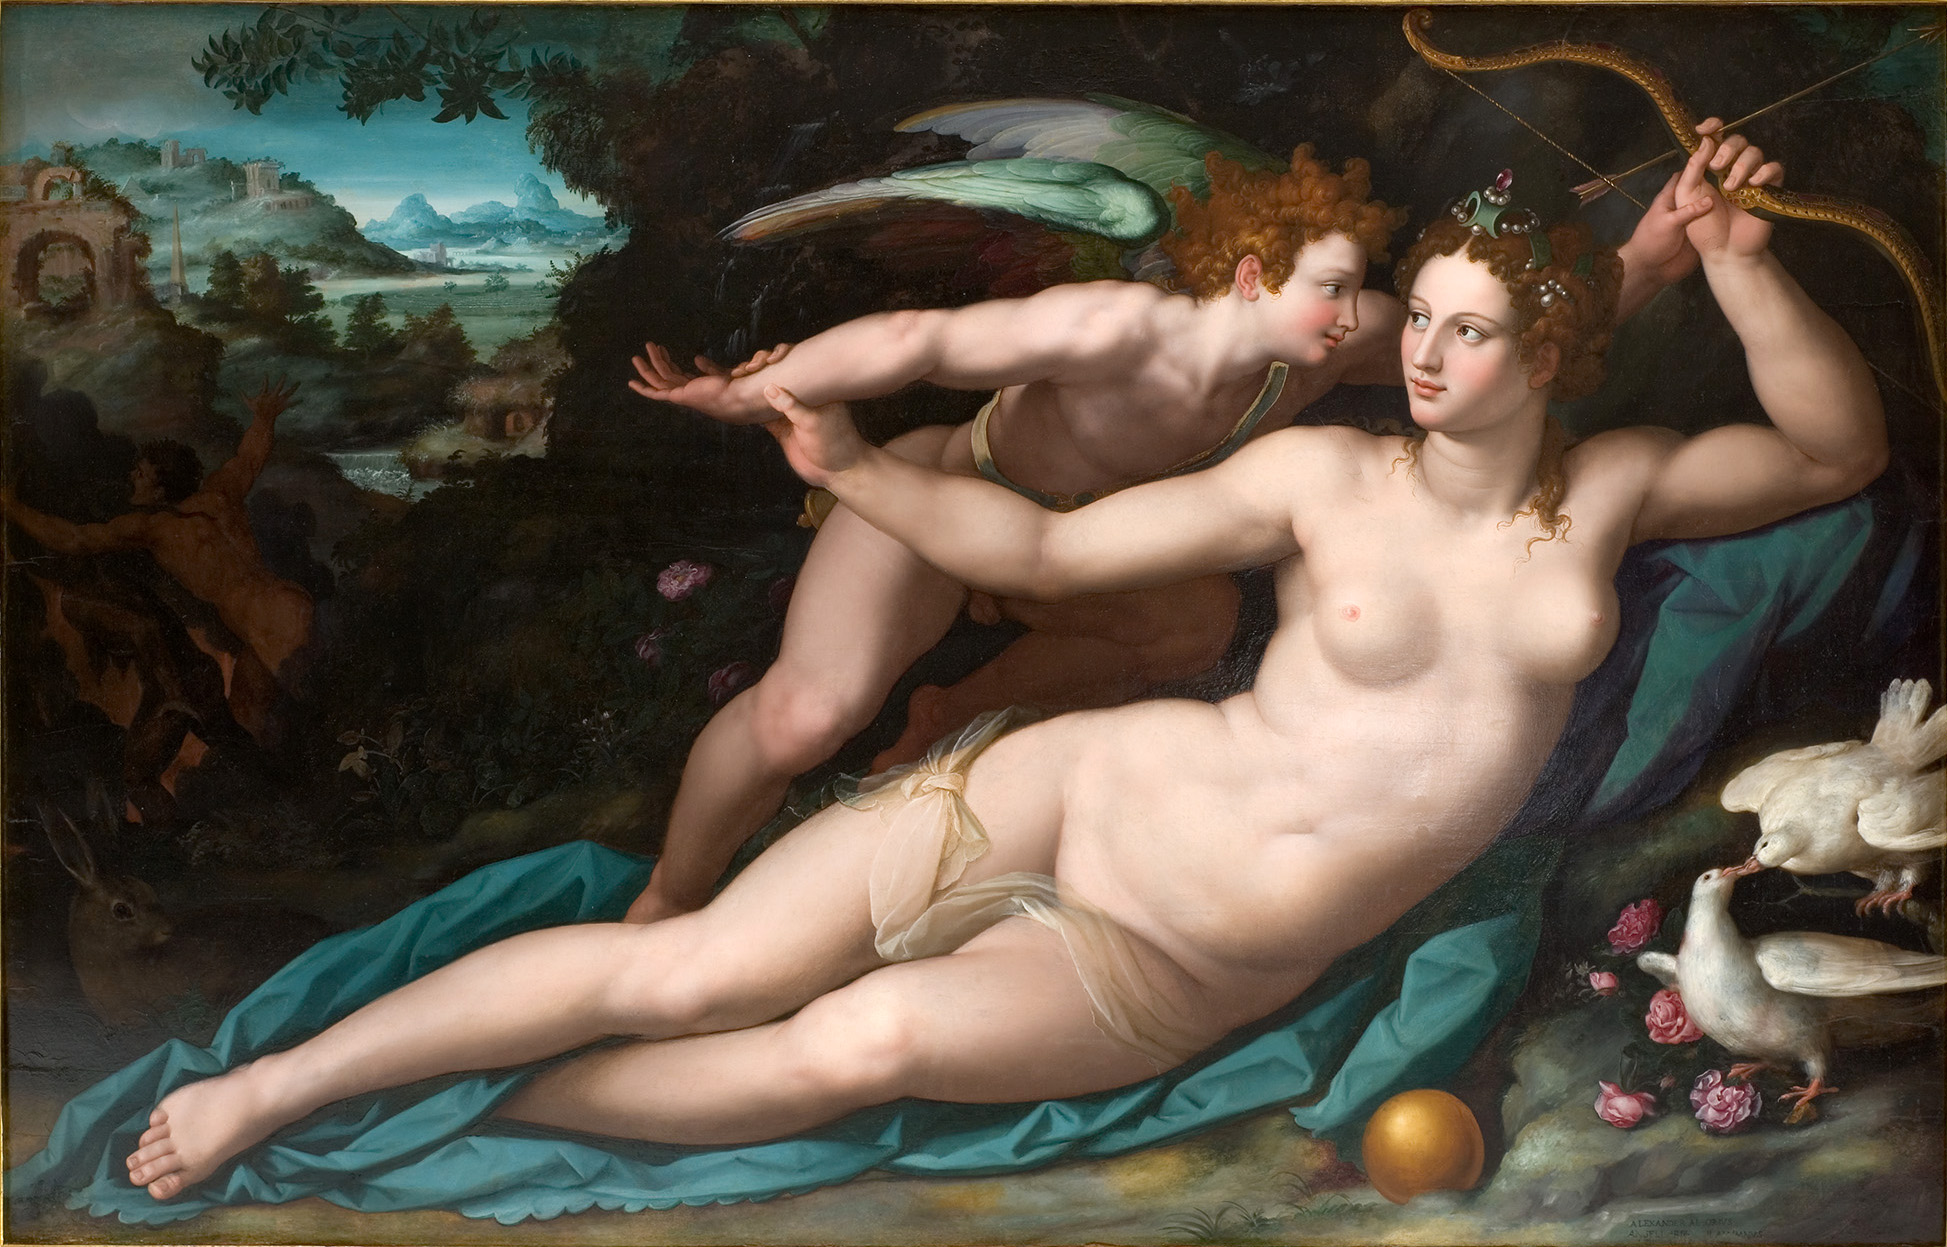 https://i0.wp.com/upload.wikimedia.org/wikipedia/commons/8/88/Allori_Venus_Cupido.jpg